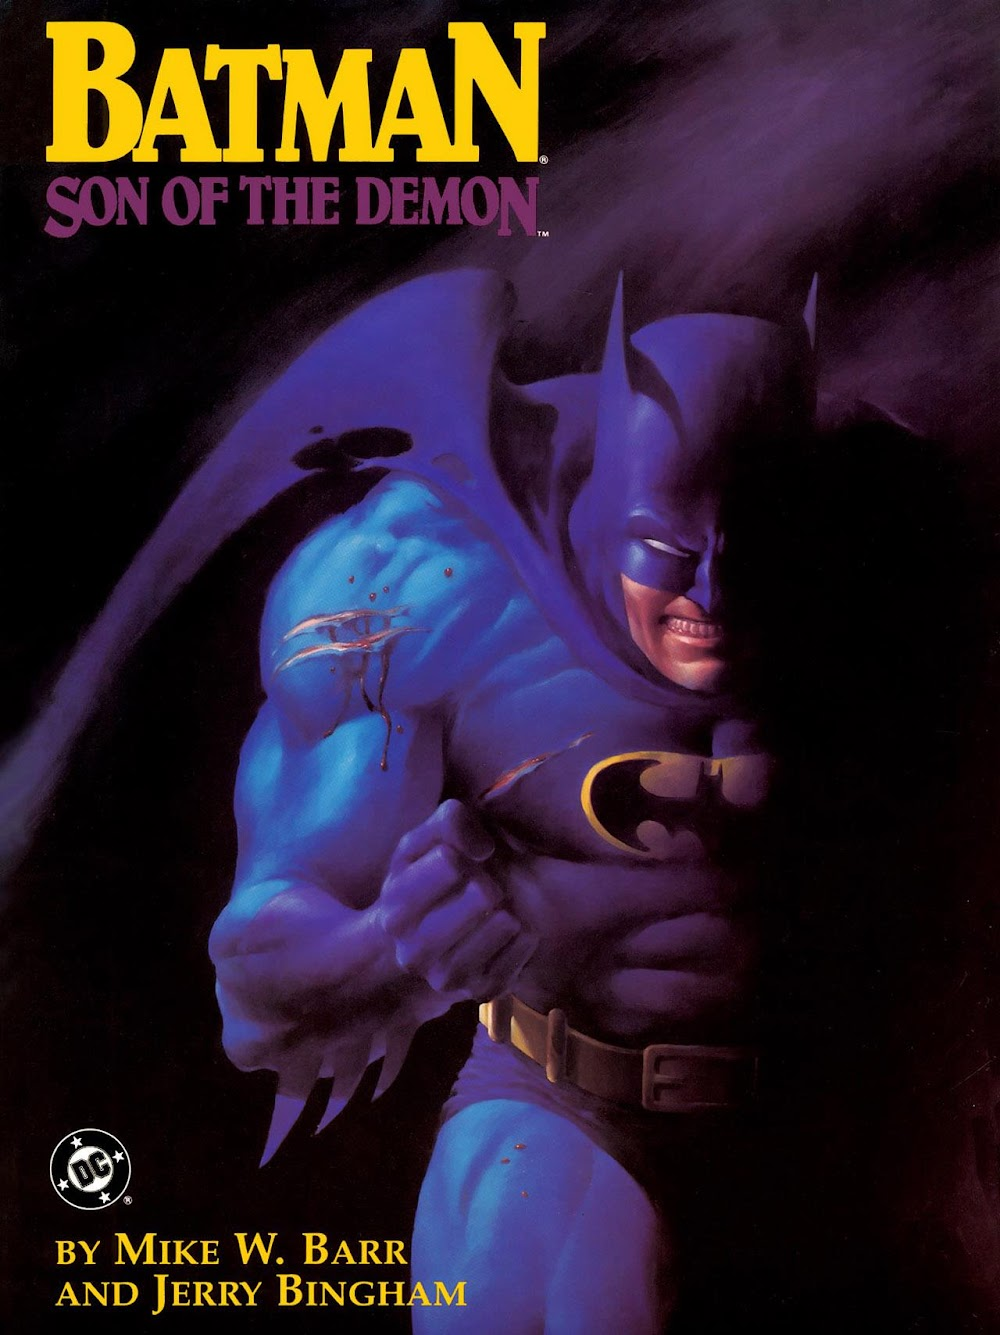 Batman - Son of the Demon (1987)